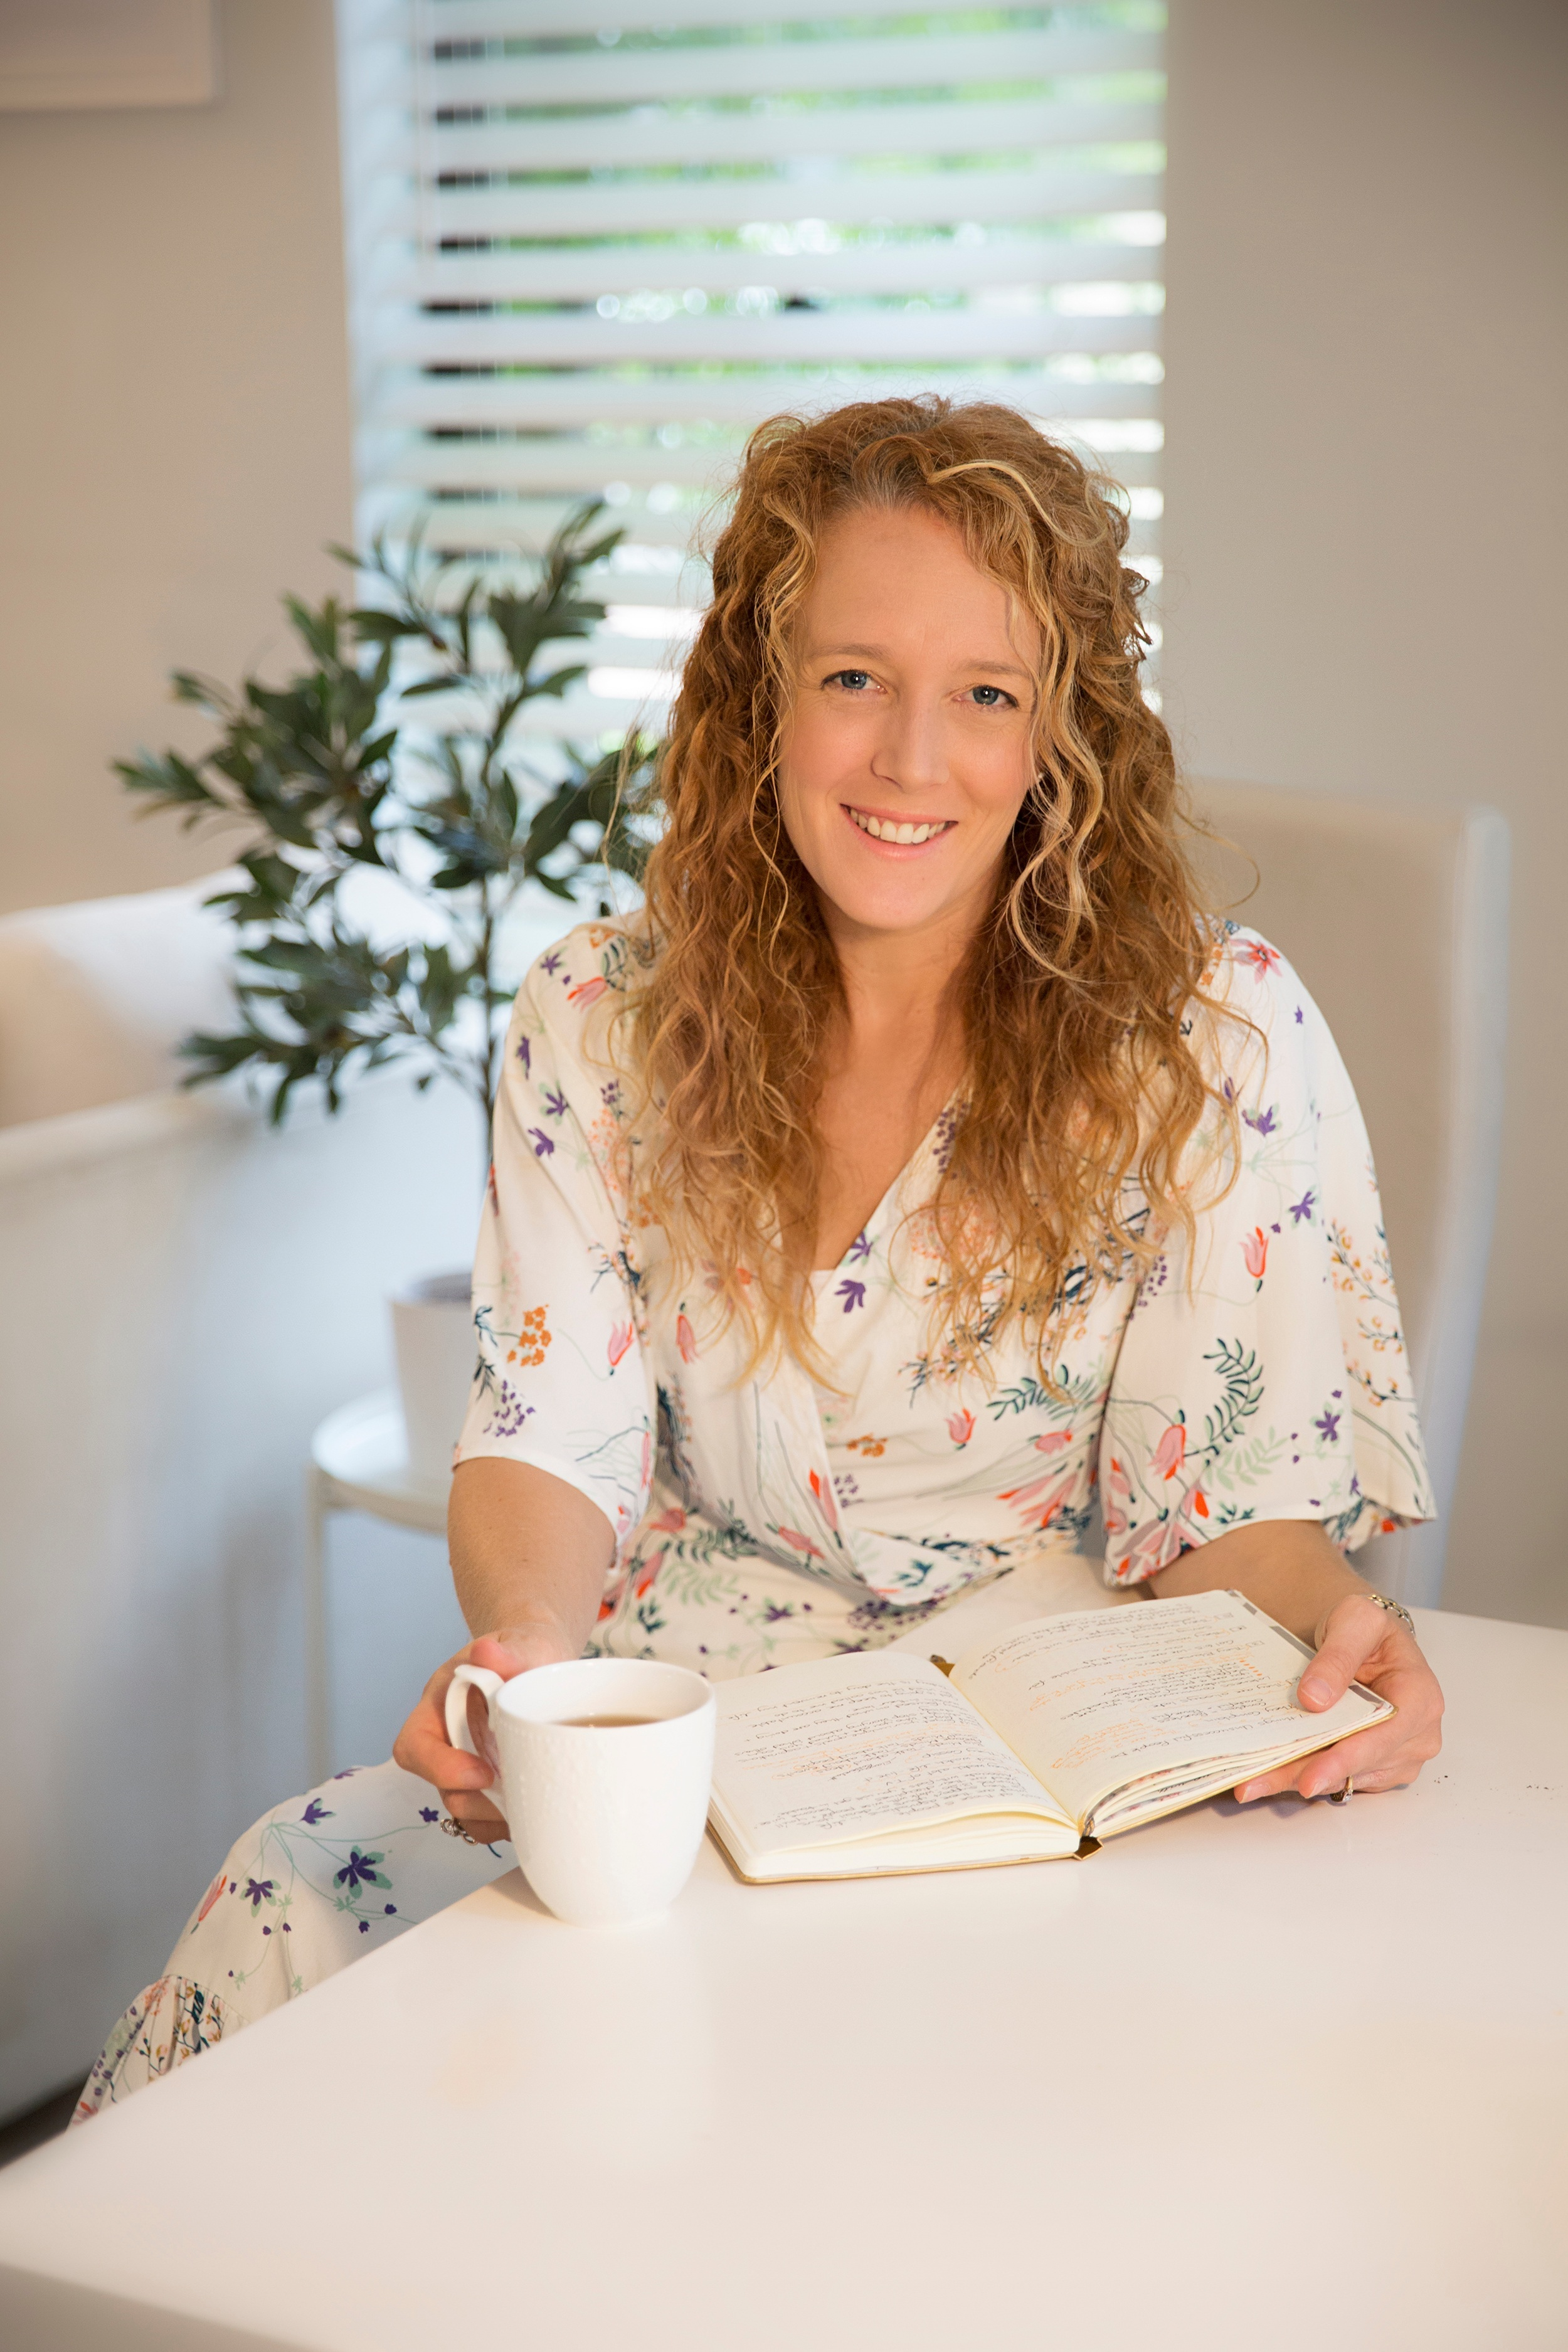 Kelly-Anne Cummings  Mindset Coach and Mentor who increases productivity through cultivating Harmony and Balance in the Workplace and the Home